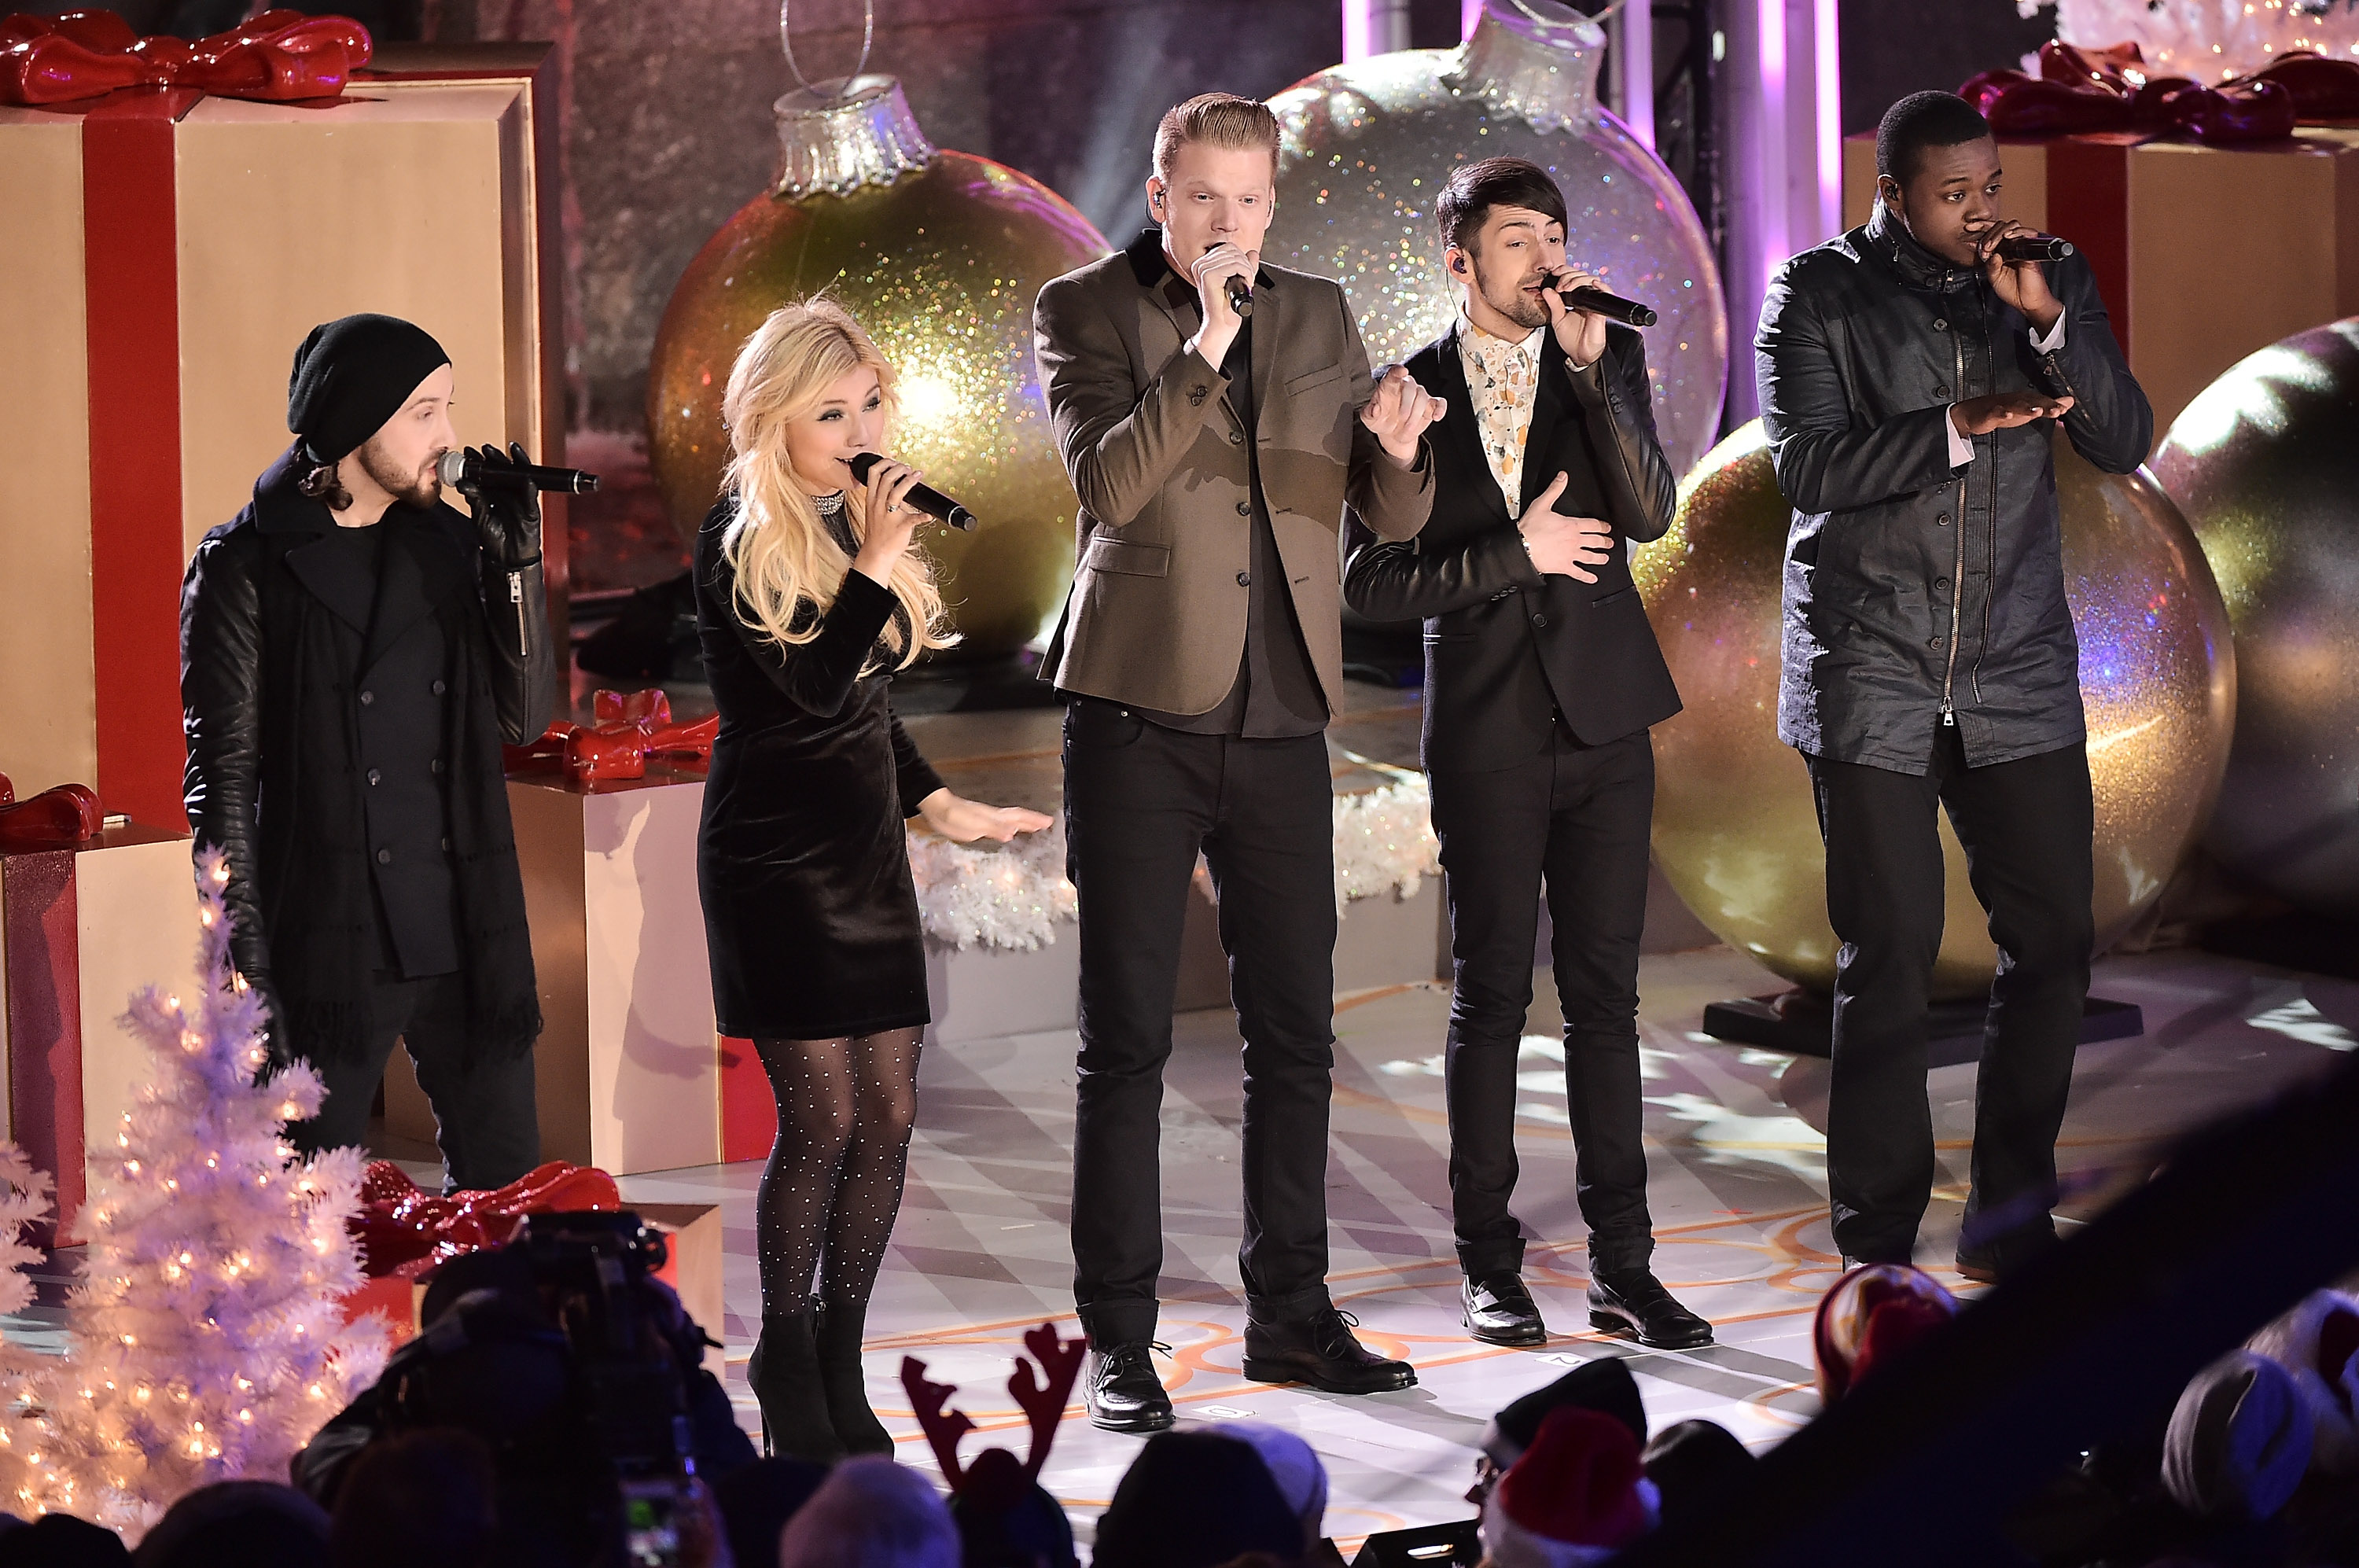 The Week In Pop: Goddamn, People Love Pentatonix